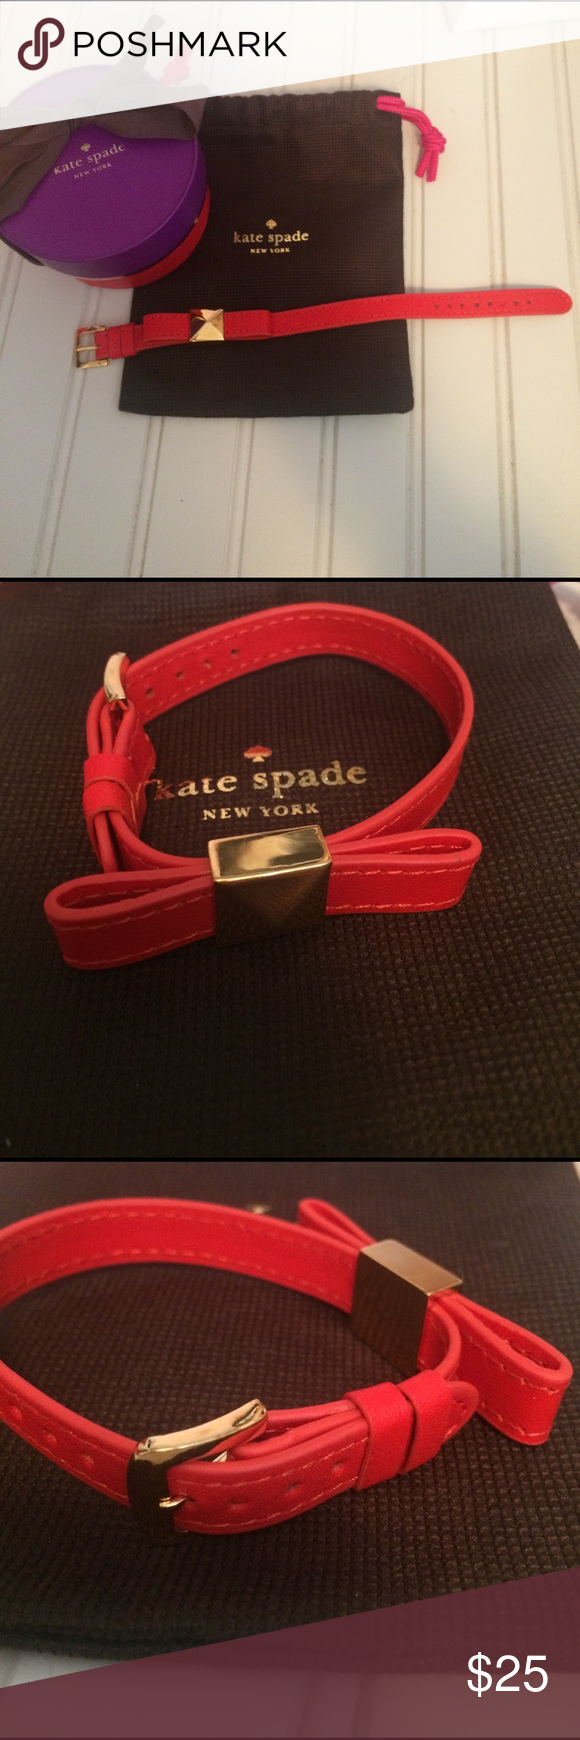 Kate spade red bow bracelet like new red leather strap with gold